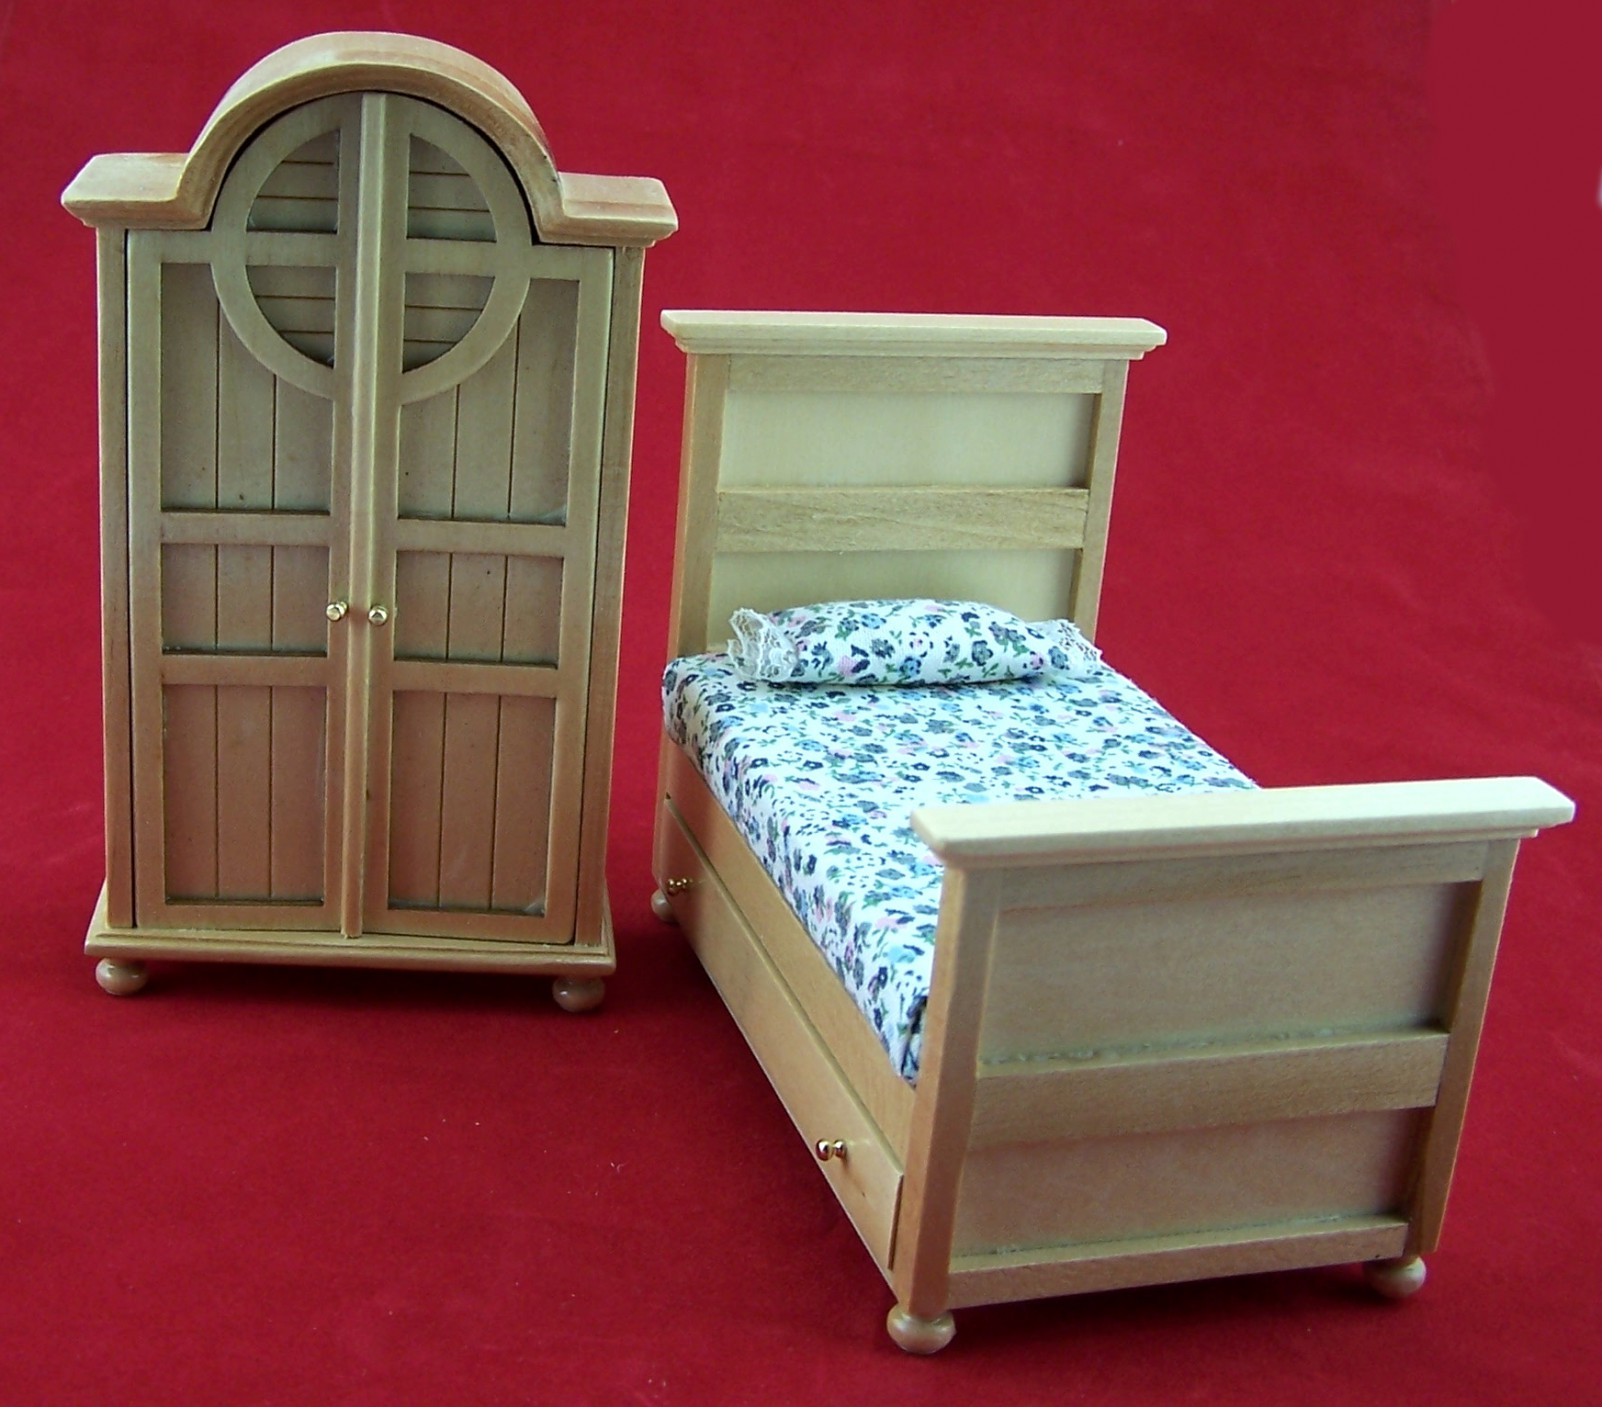 miniatur schrank und bett f r kinderzimmer aus holz lackiert 1 12 puppenstuben puppenstuben. Black Bedroom Furniture Sets. Home Design Ideas